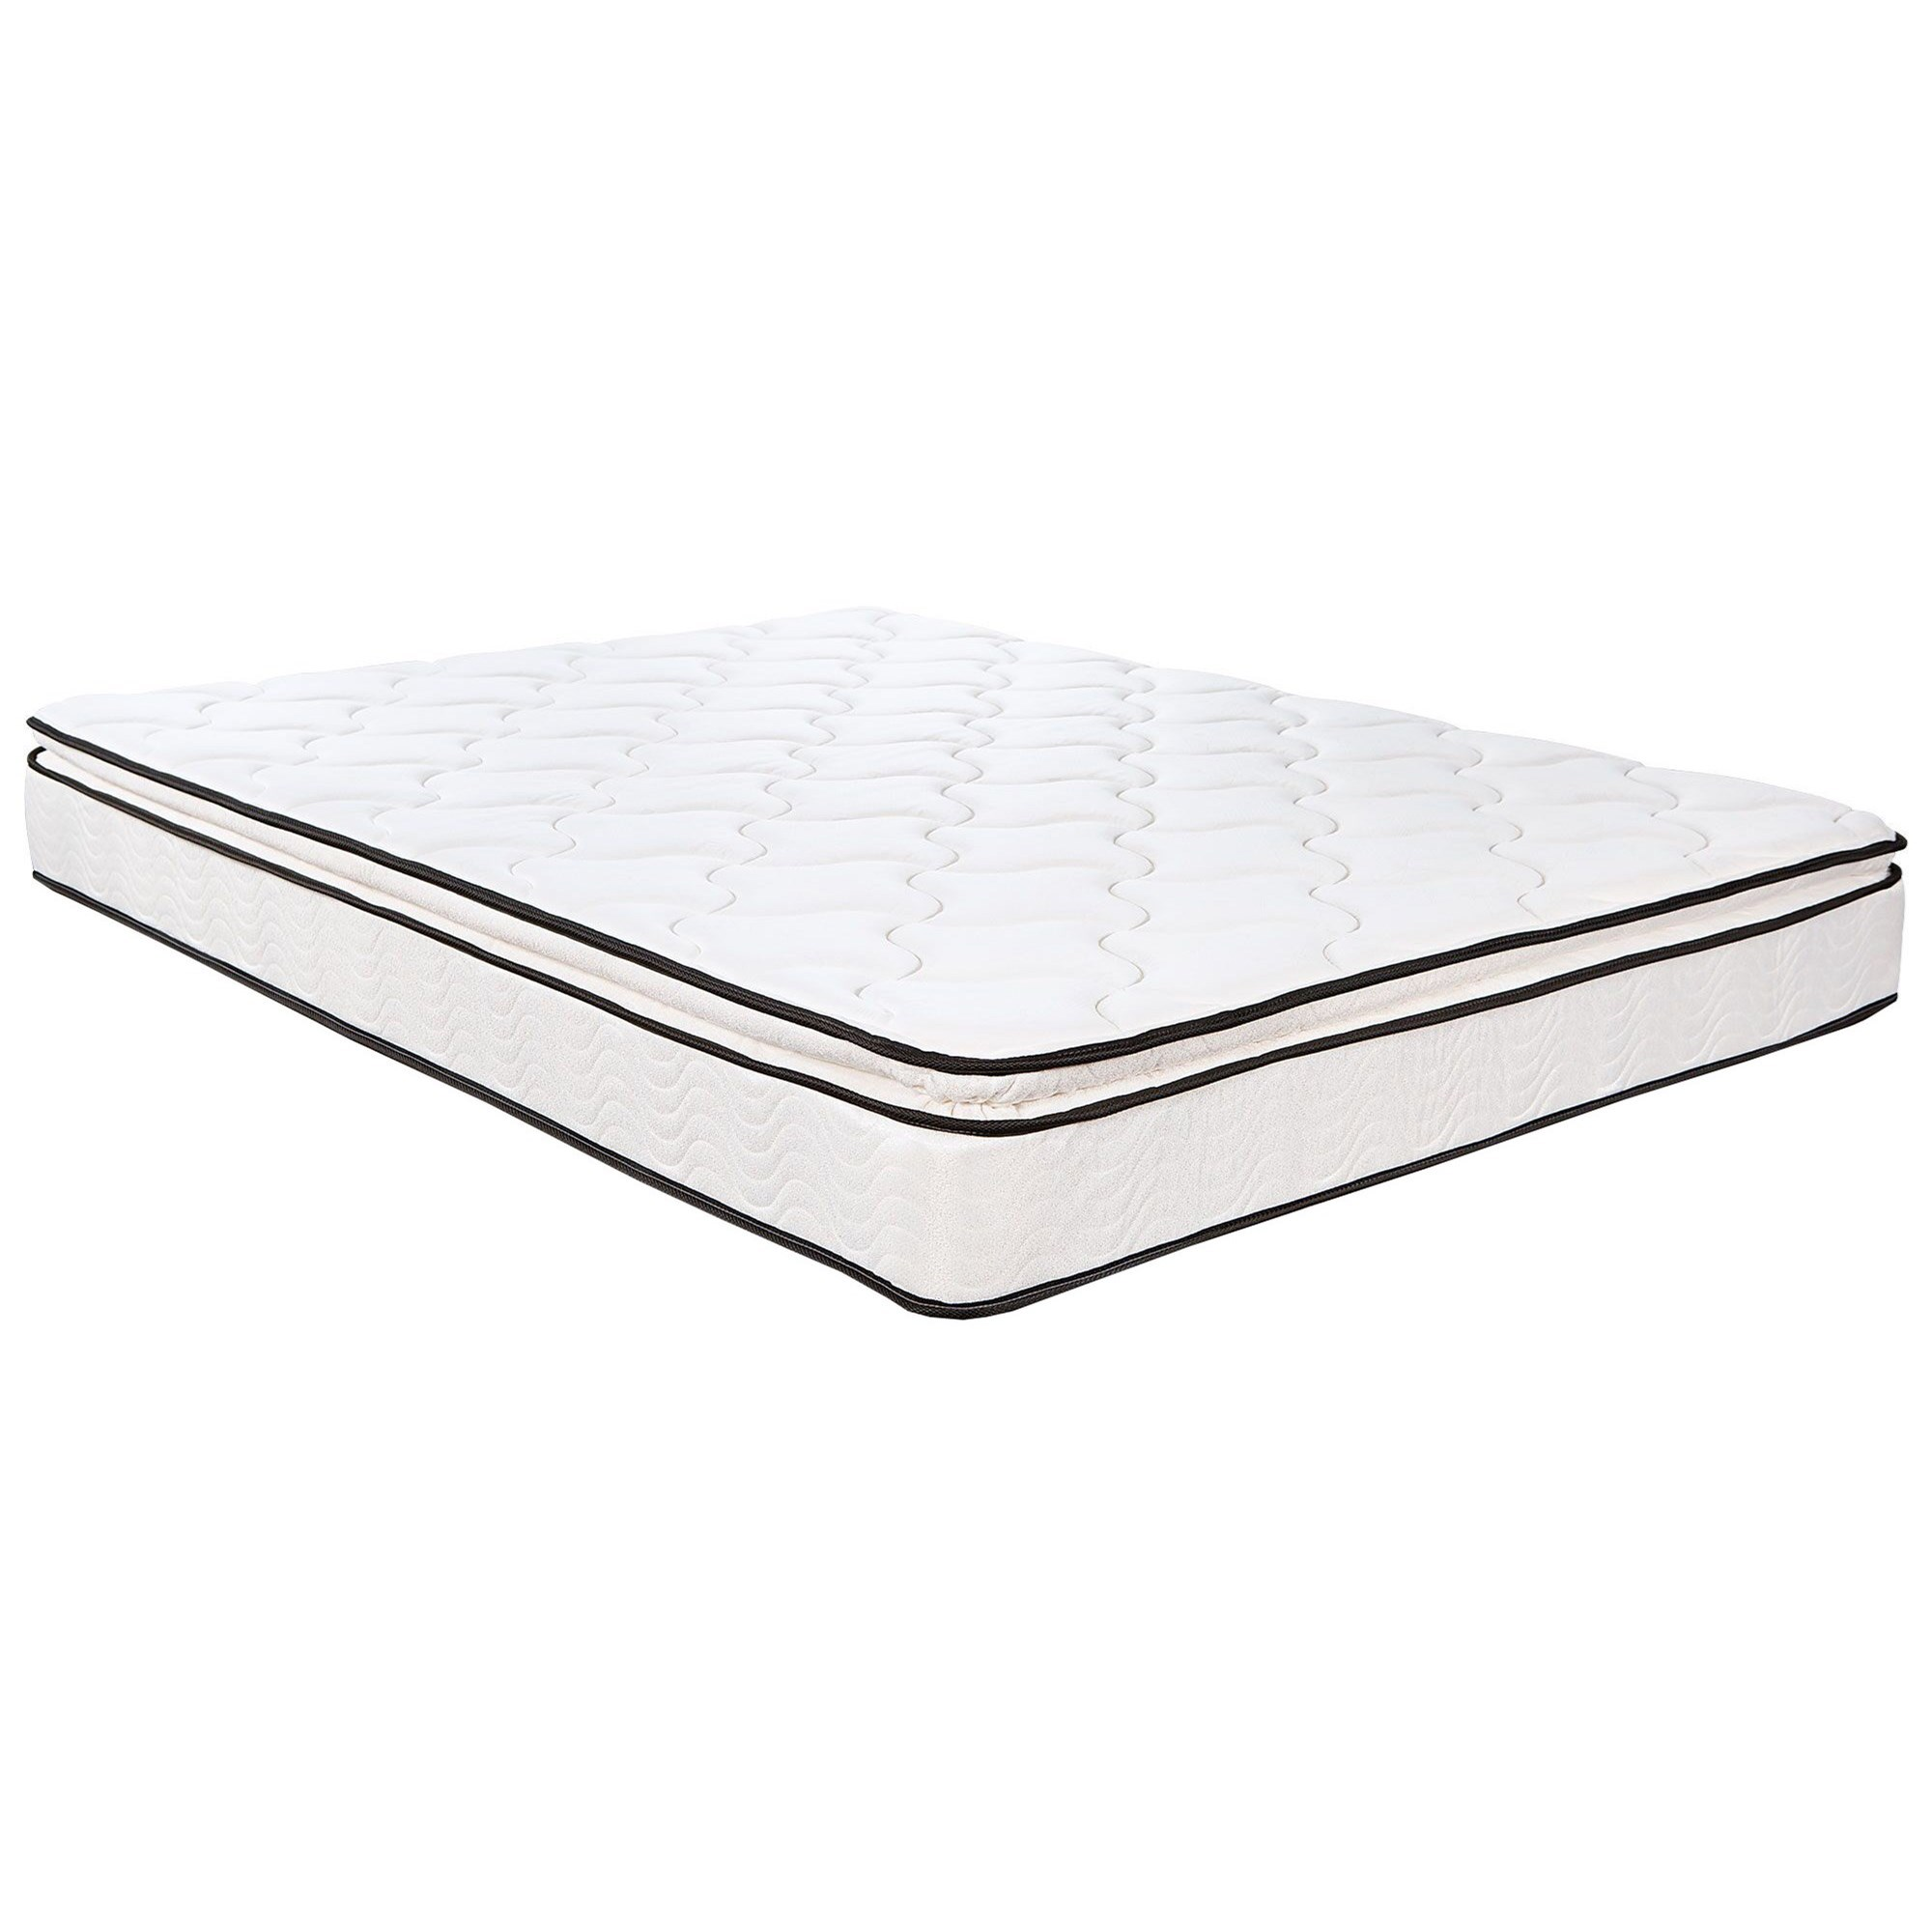 4400 PT Queen Innerspring Mattress by Southerland Bedding Co. at Wilcox Furniture